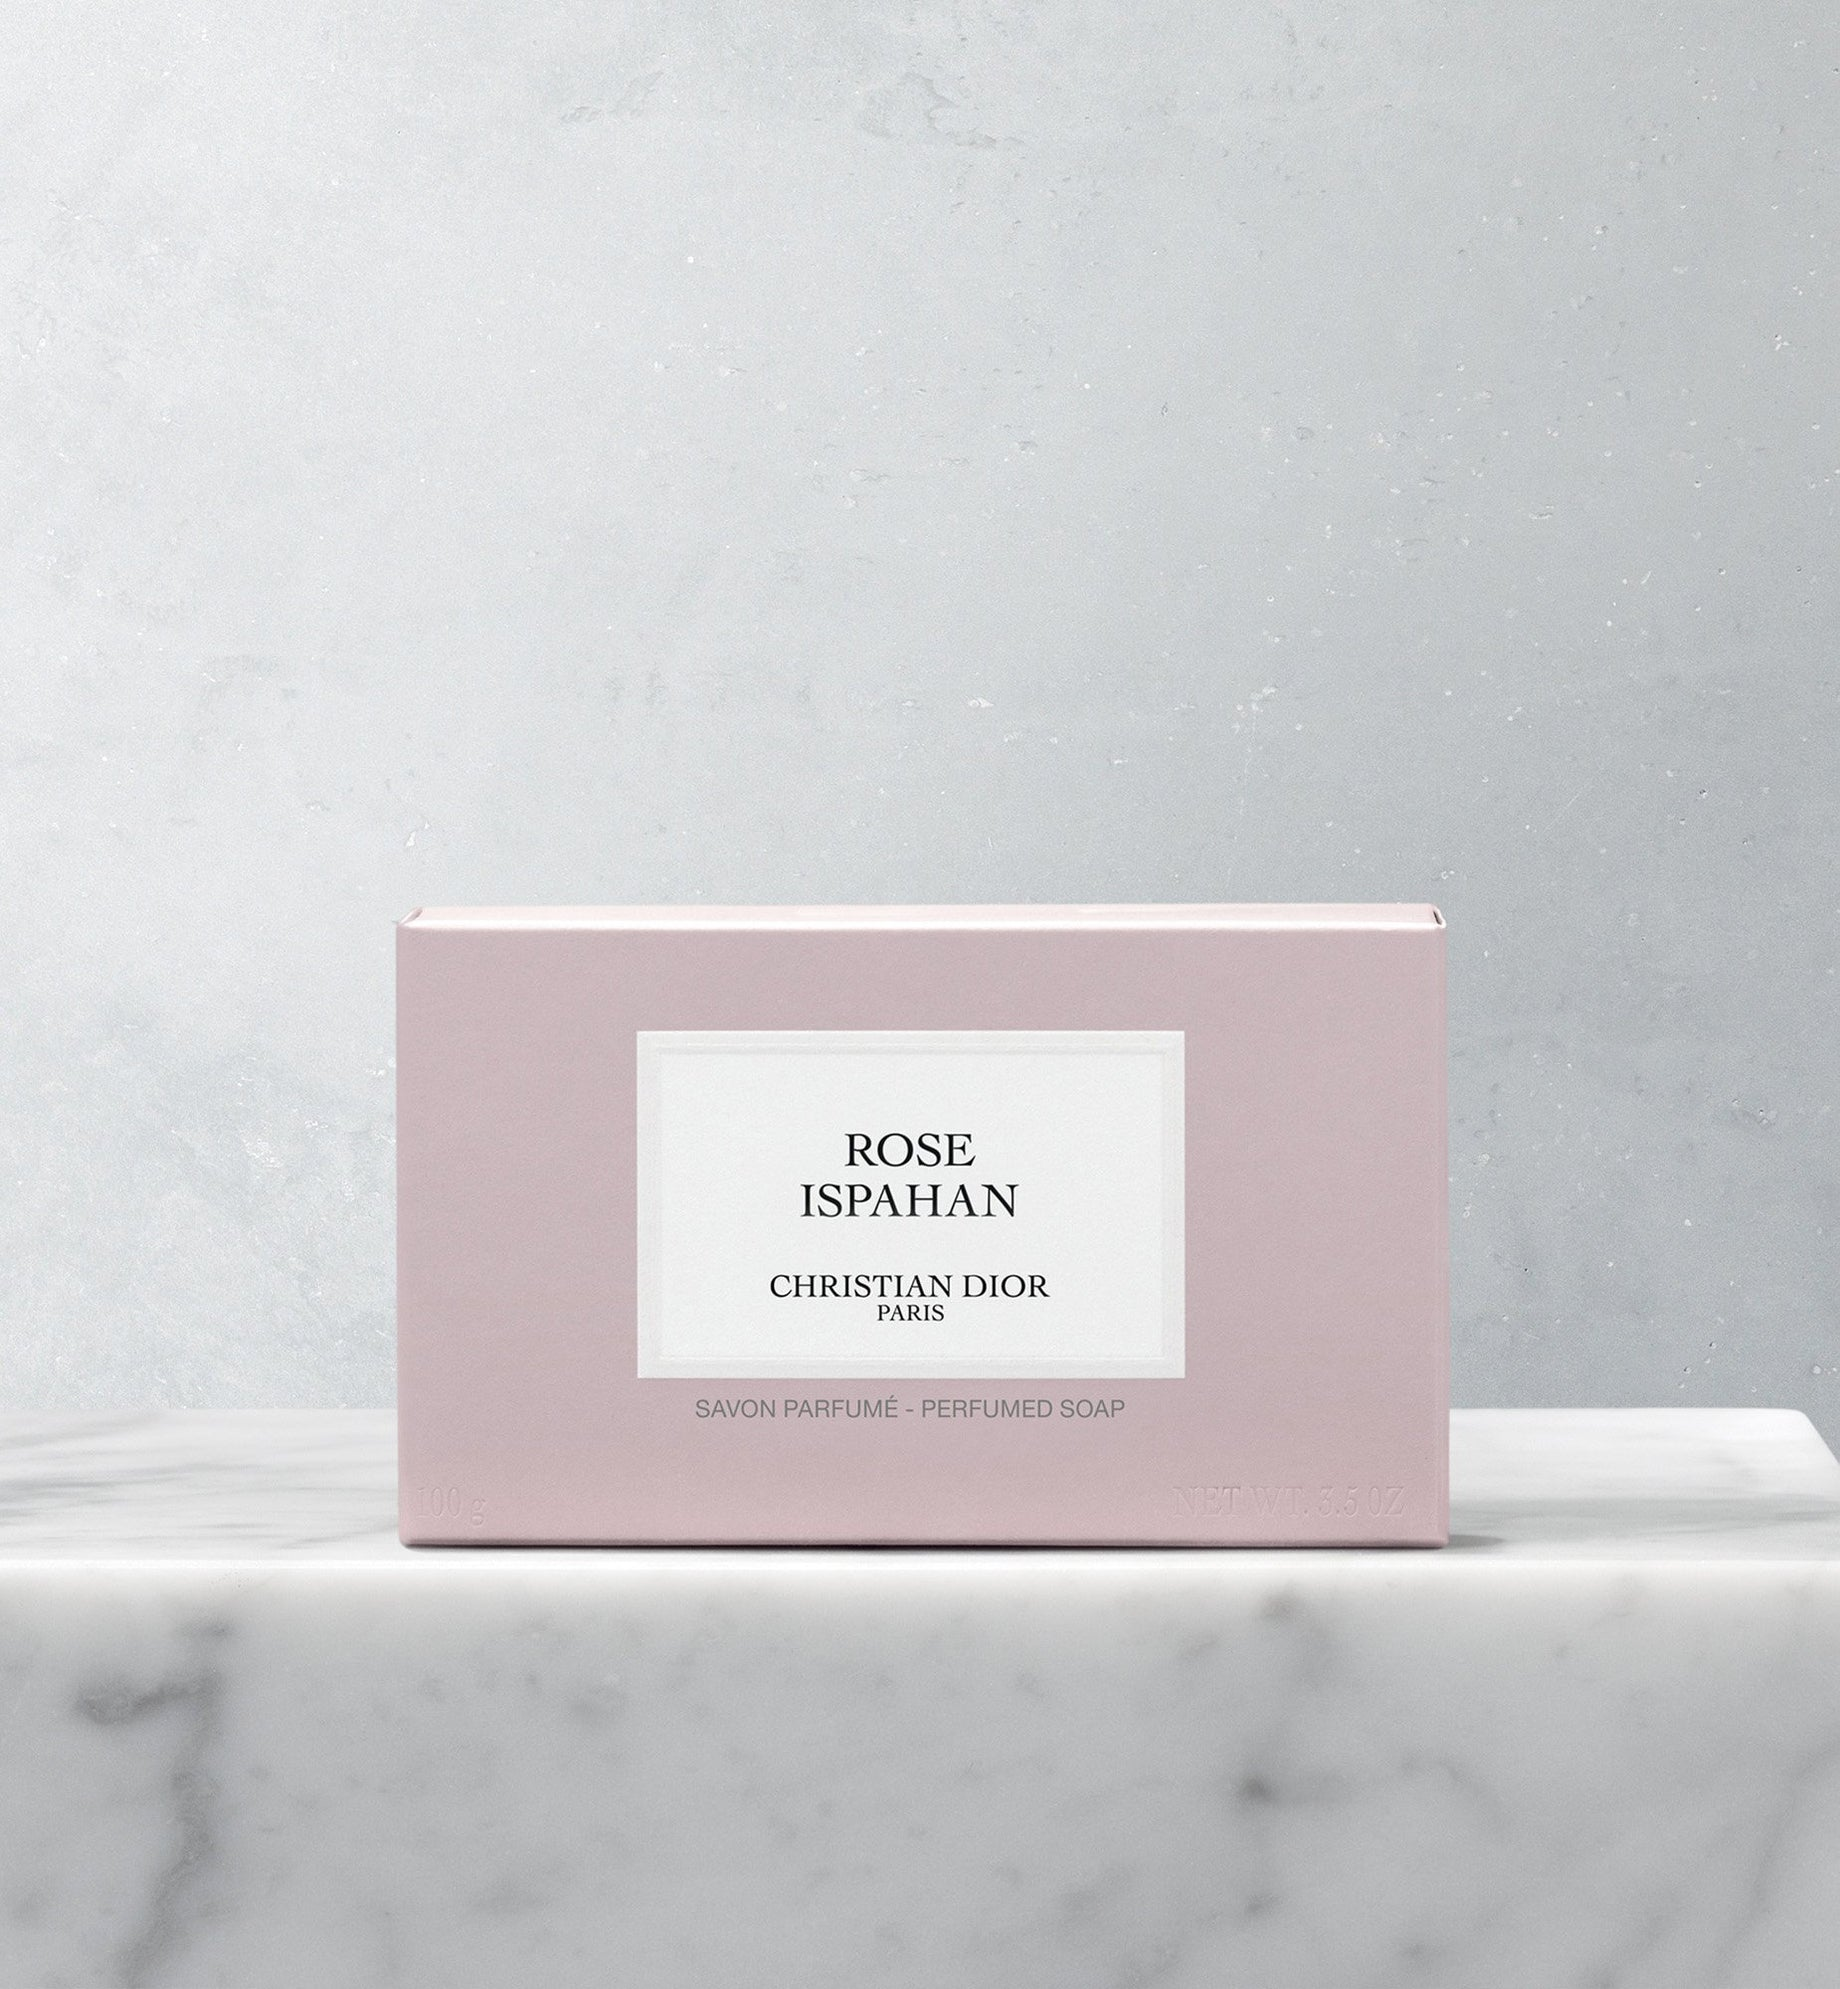 ROSE ISPAHAN SOAP